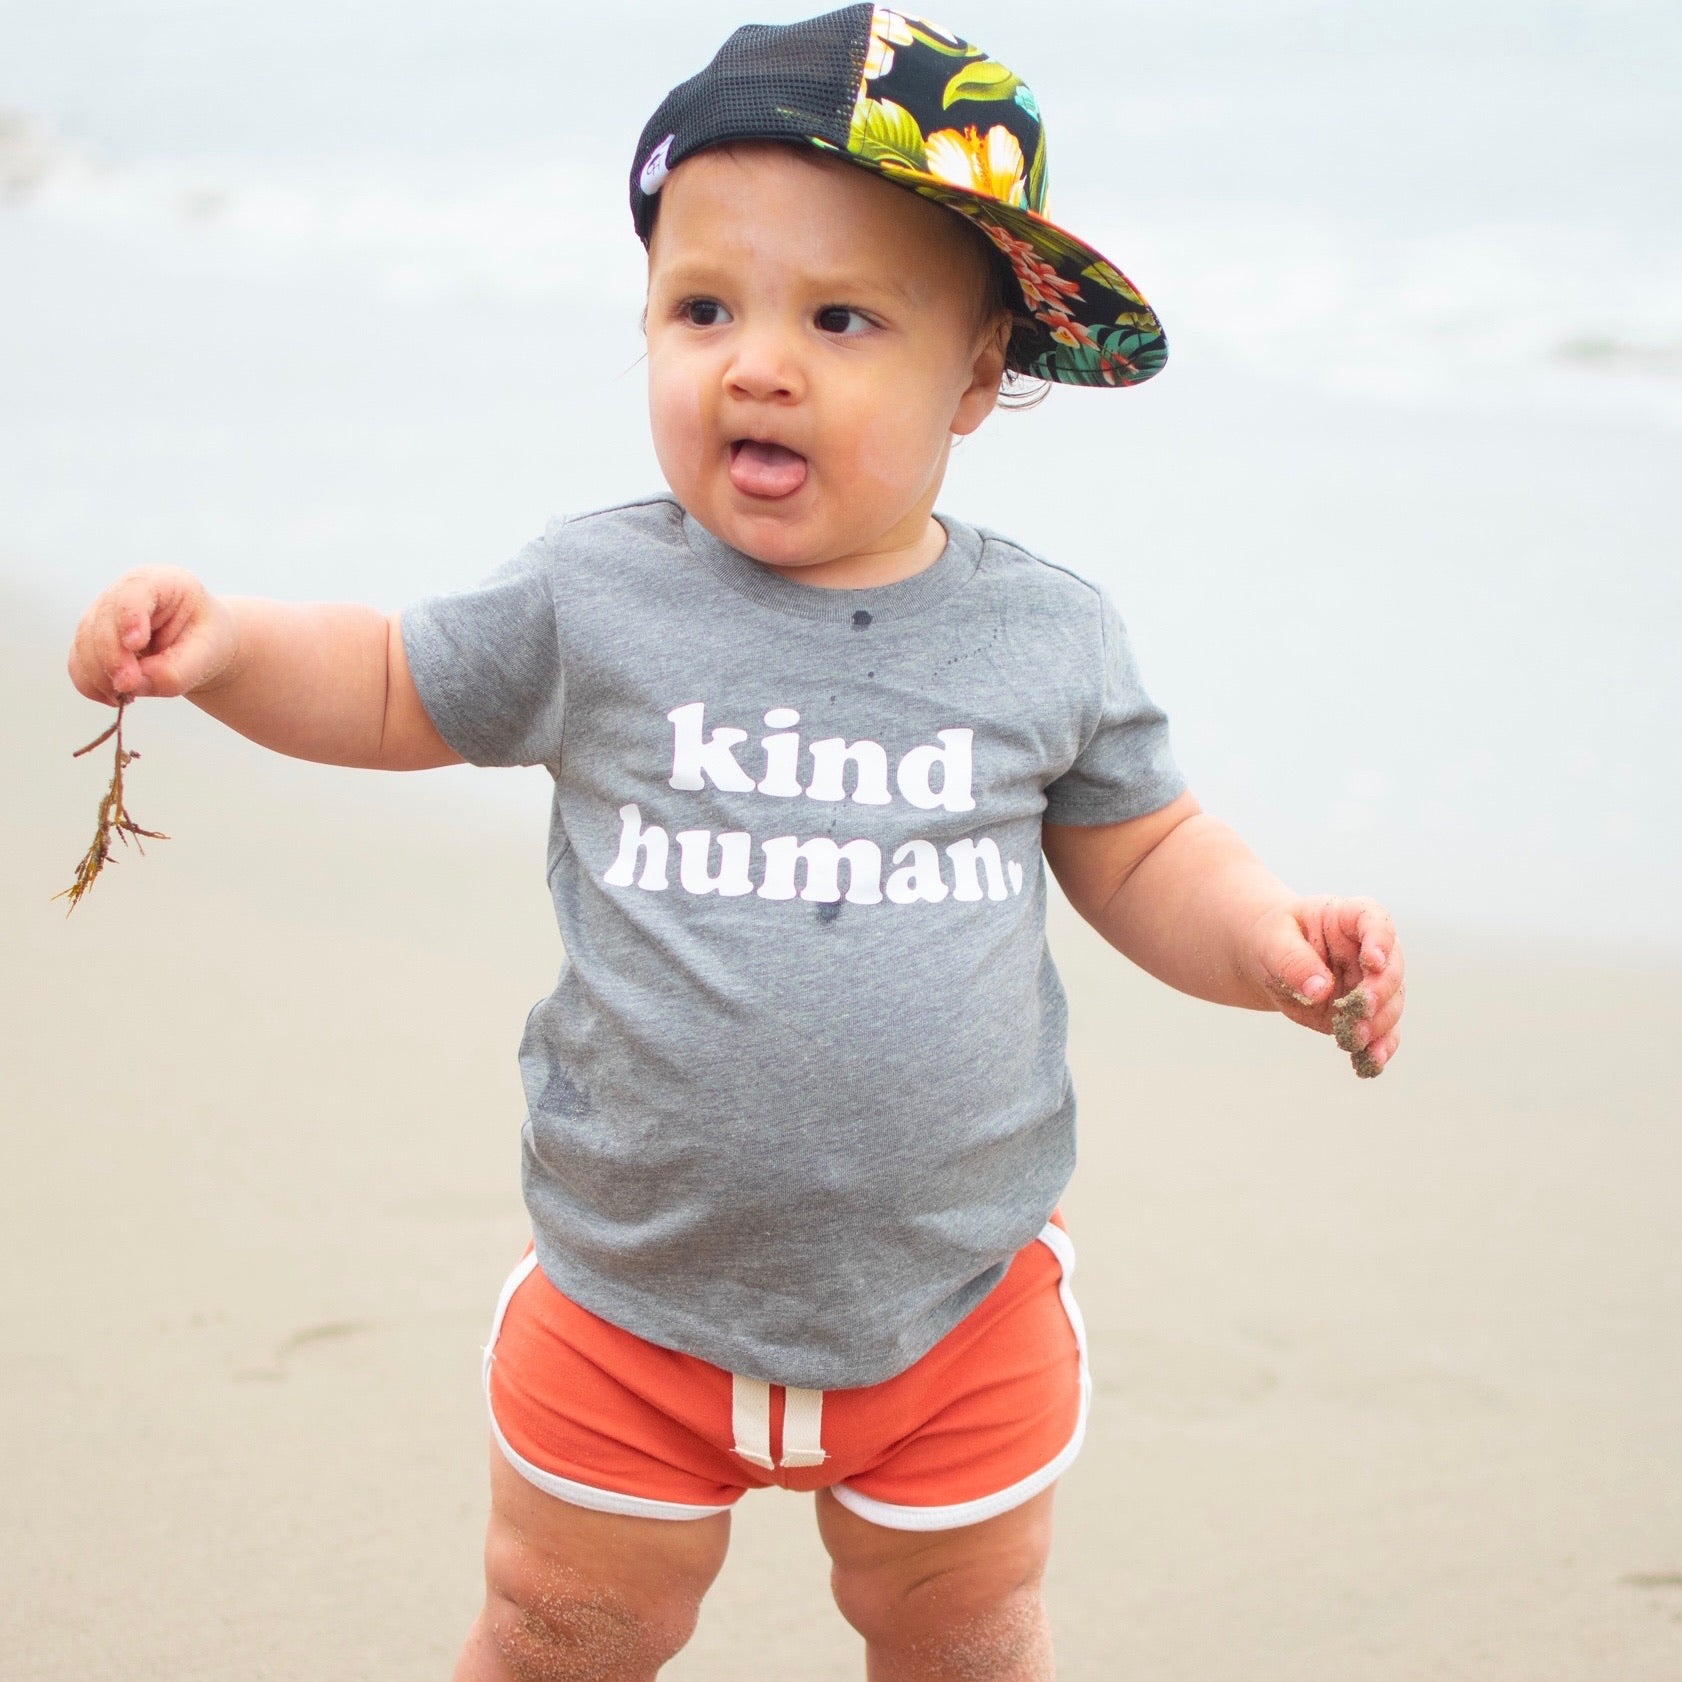 KIND HUMAN KIDS SHIRT